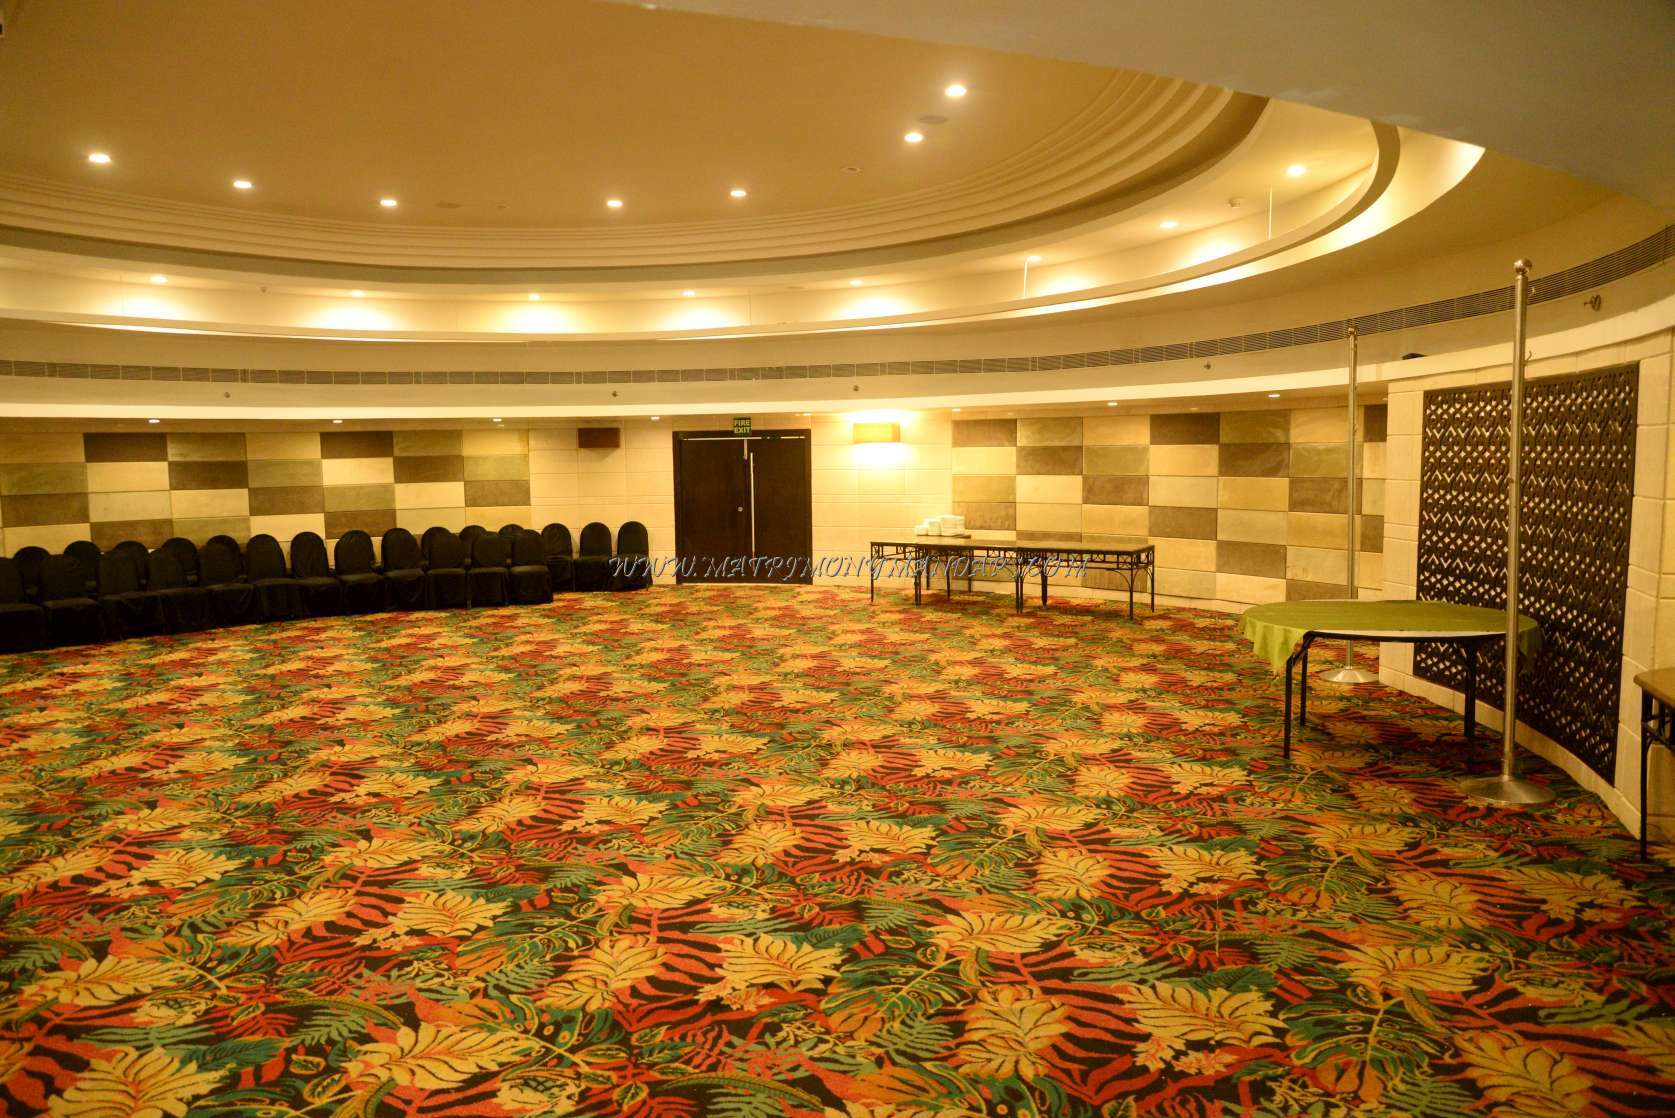 Sandesh The Savera - Pre-function Area